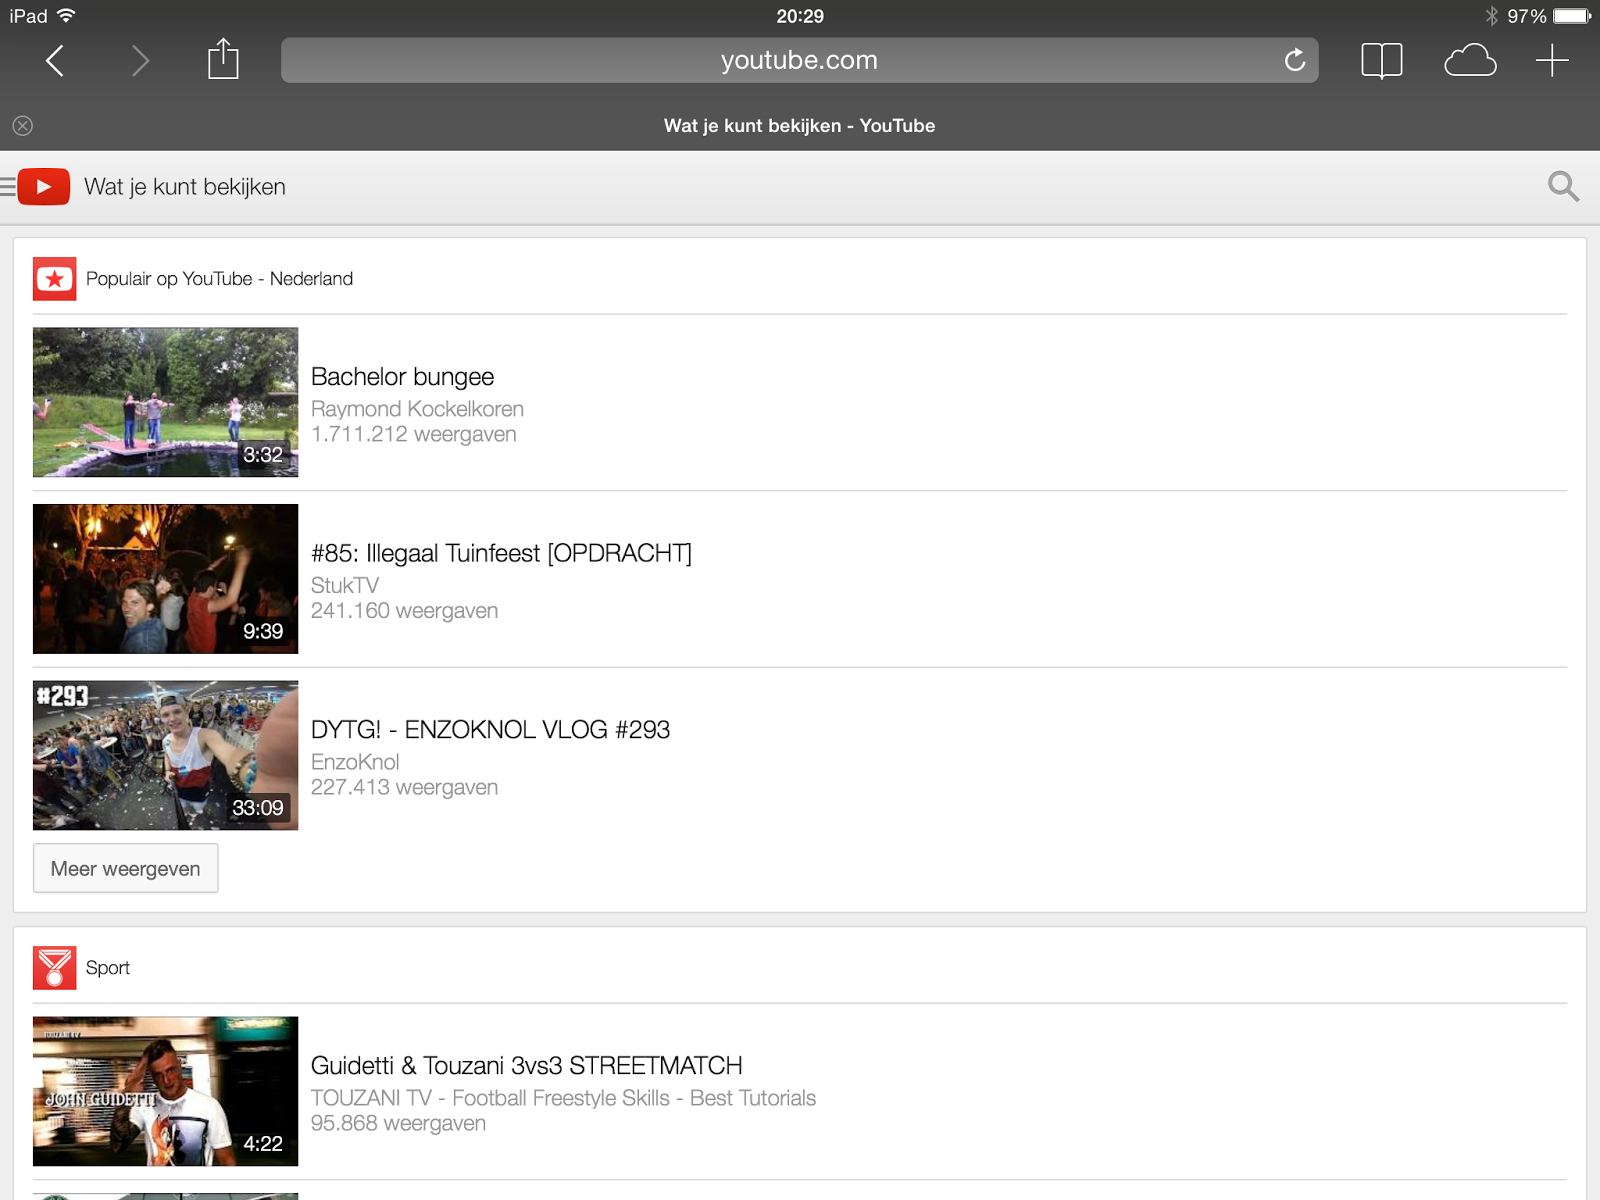 3.2 Tablet De tablet screenshots zijn genomen op een ipad met een geschaalde resolutie van 1024x768. 3.2.1 Youtube Visual complexity; De visual complexity van de youtube site voor tablets is laag.